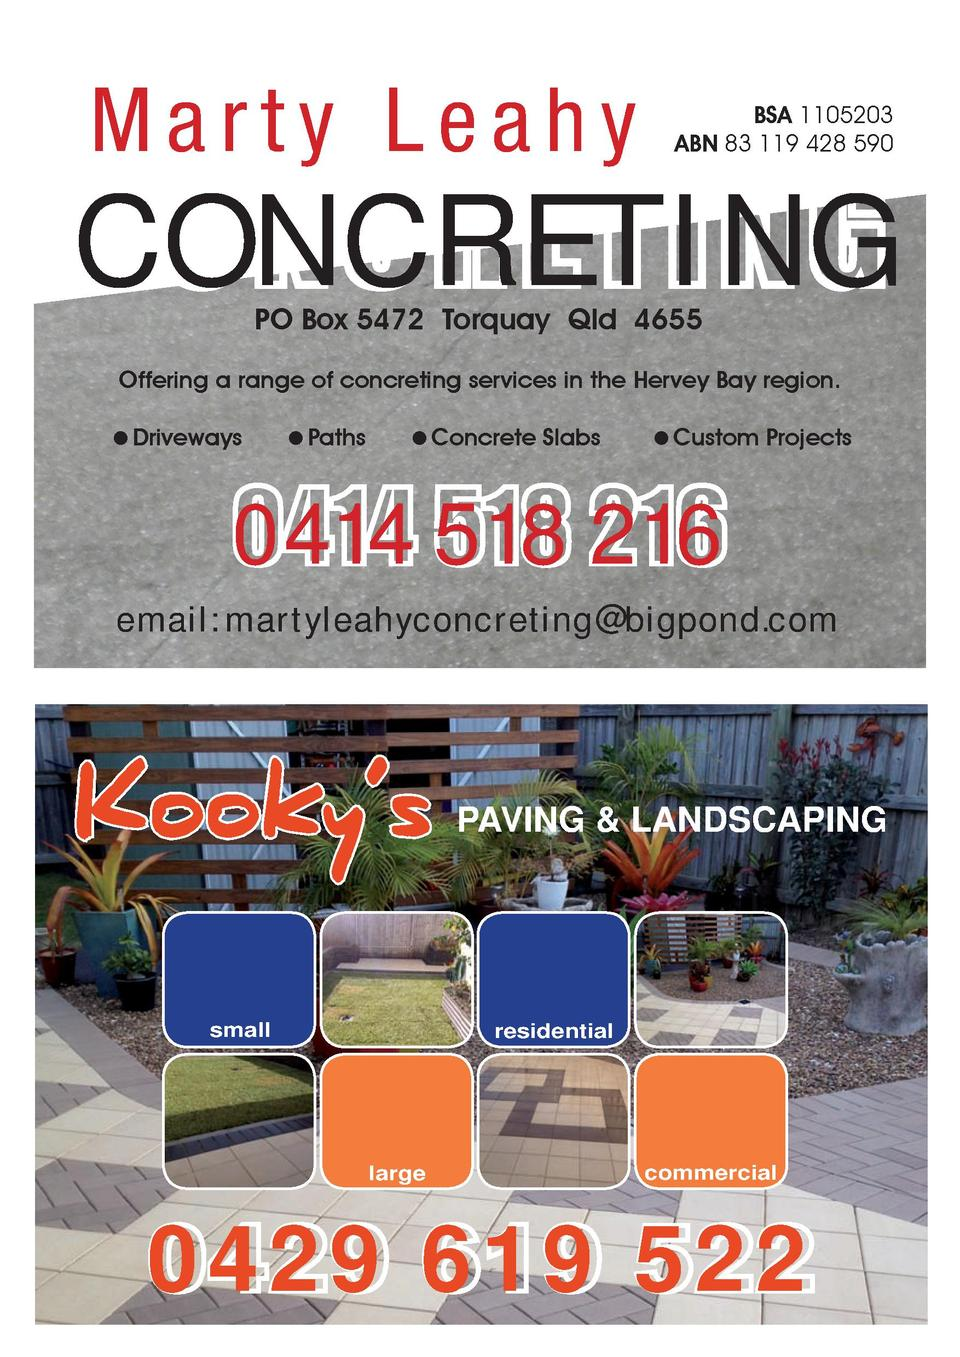 Marty Leahy  BSA 1105203 ABN 83 119 428 590  CONCRETING PO Box 5472 Torquay Qld 4655  Offering a range of concreting servi...